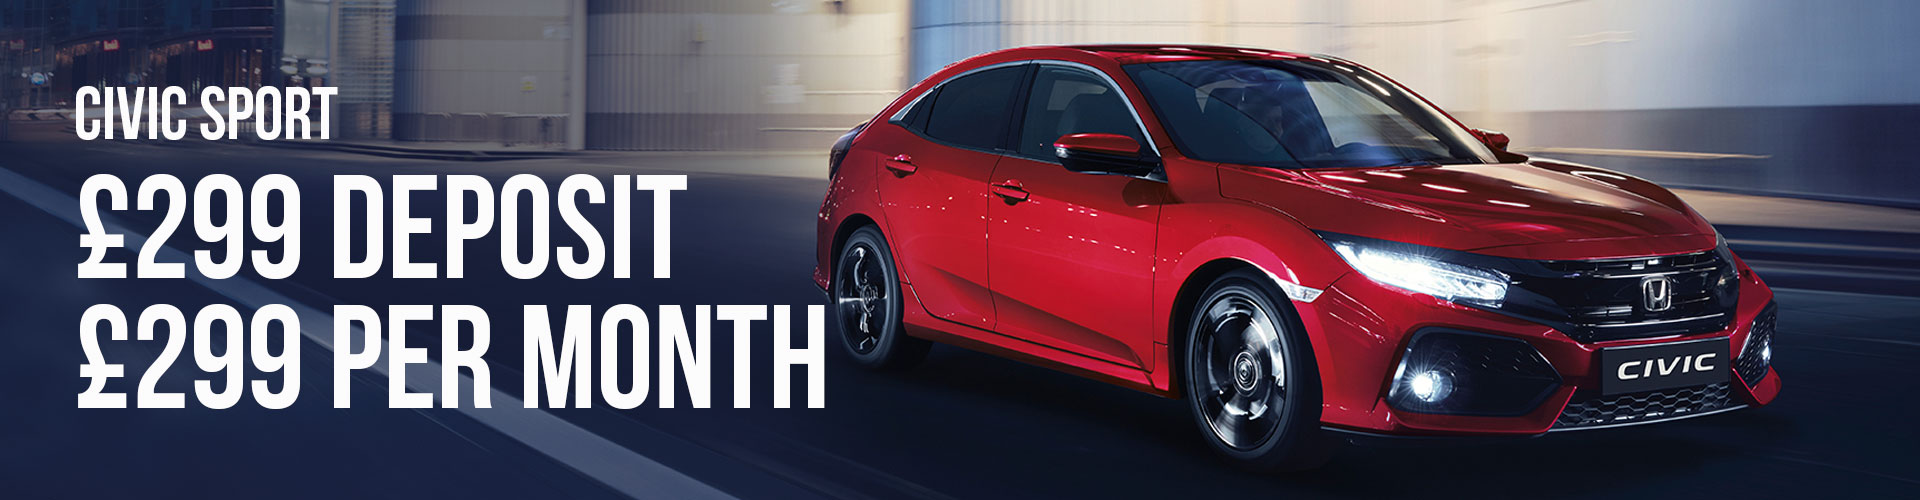 The Civic Sport - £299 Deposit & £299 Monthly Payment